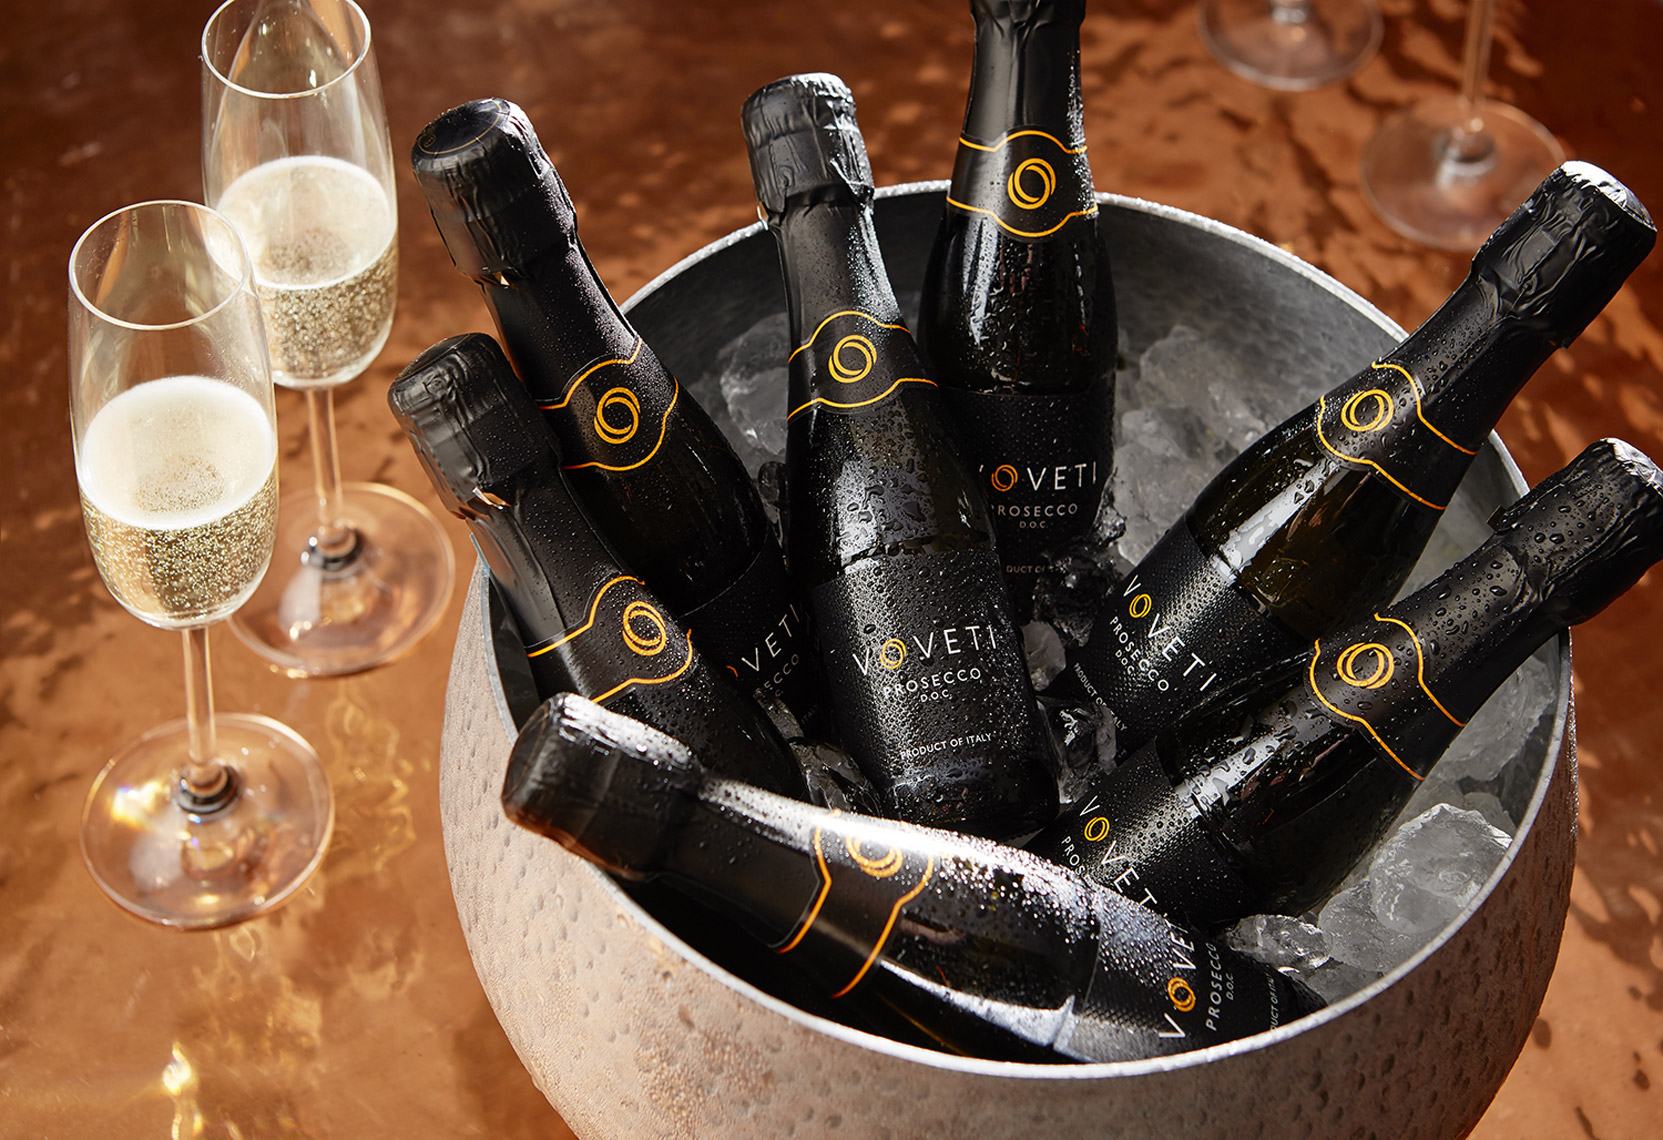 AlanCampbellPhotography, Volveti Ice bucket Prosecco party